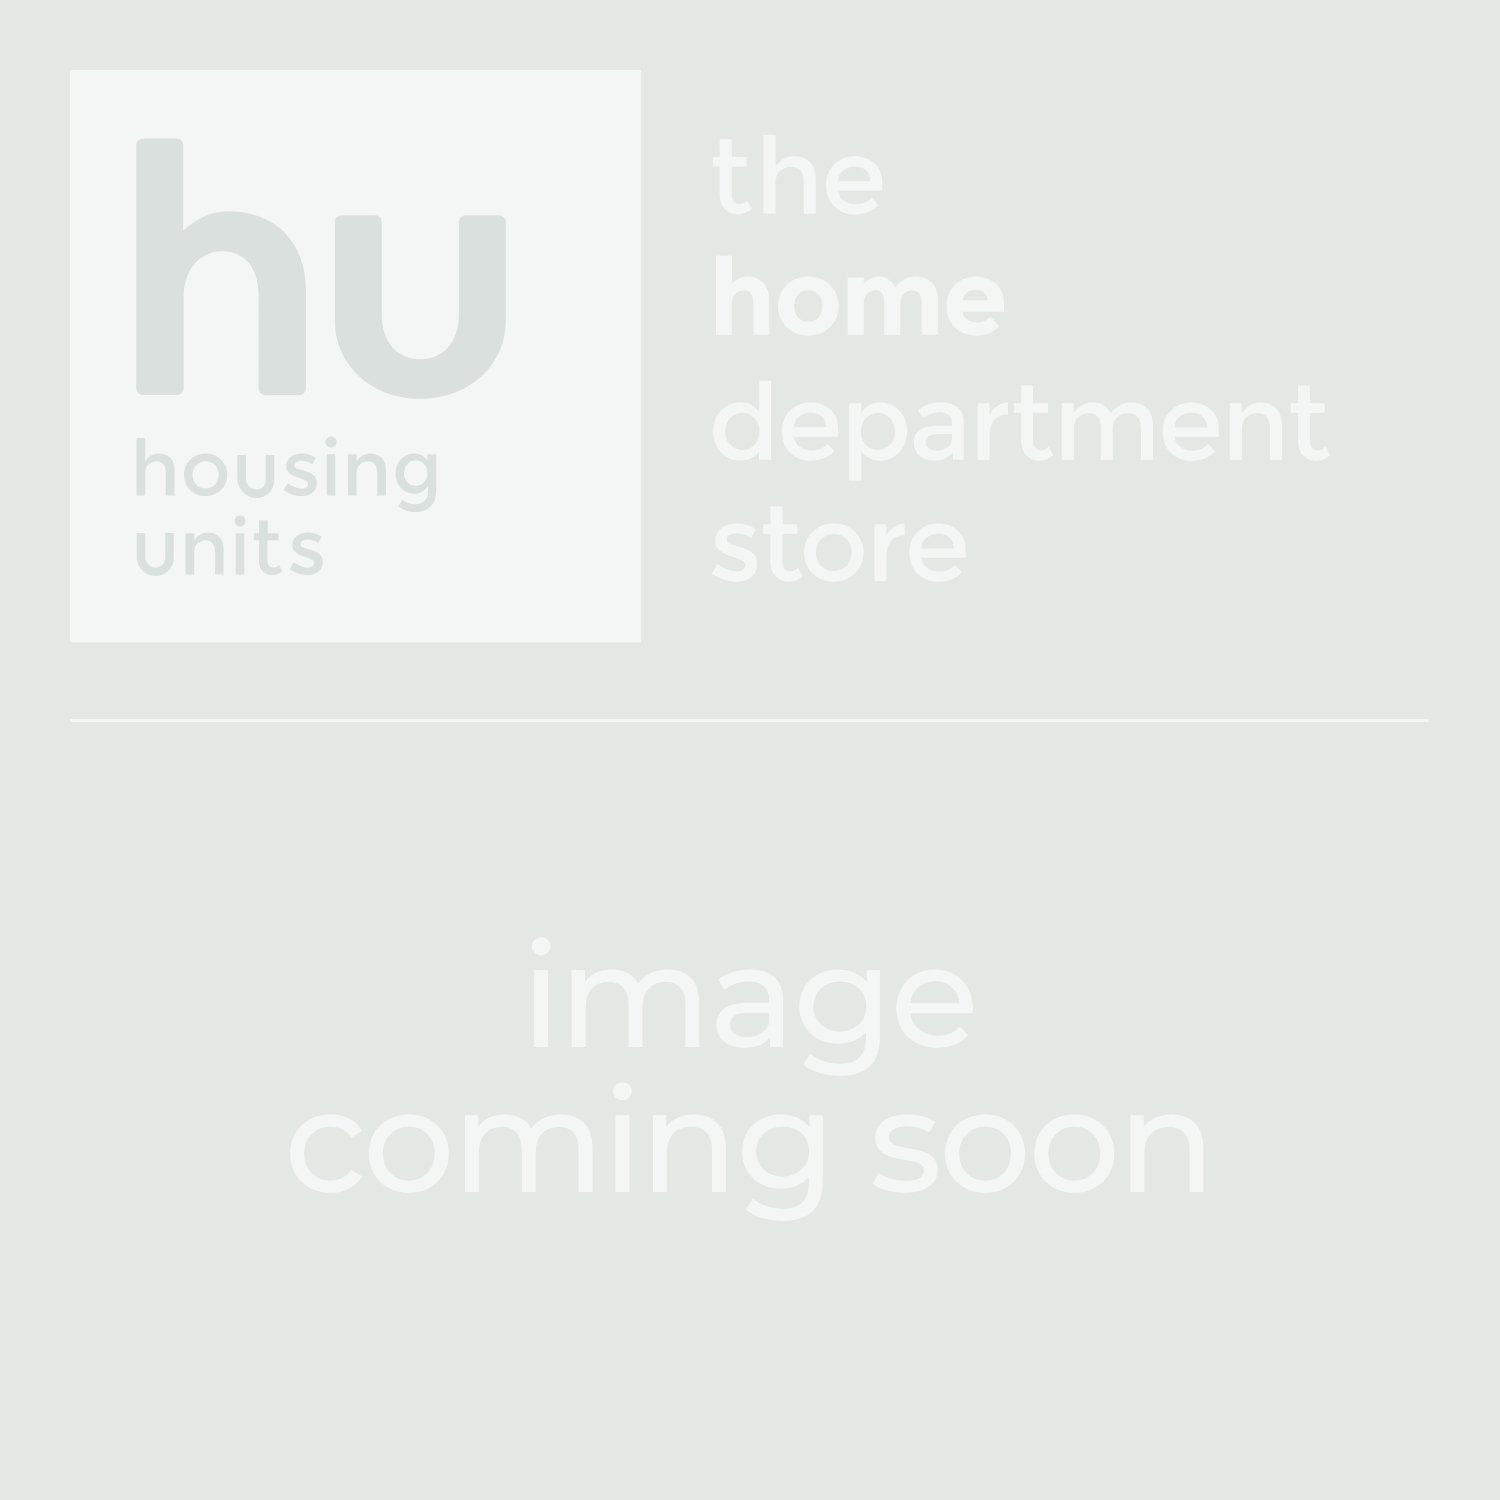 Housing Units Home Glass Cleaner | Housing Units